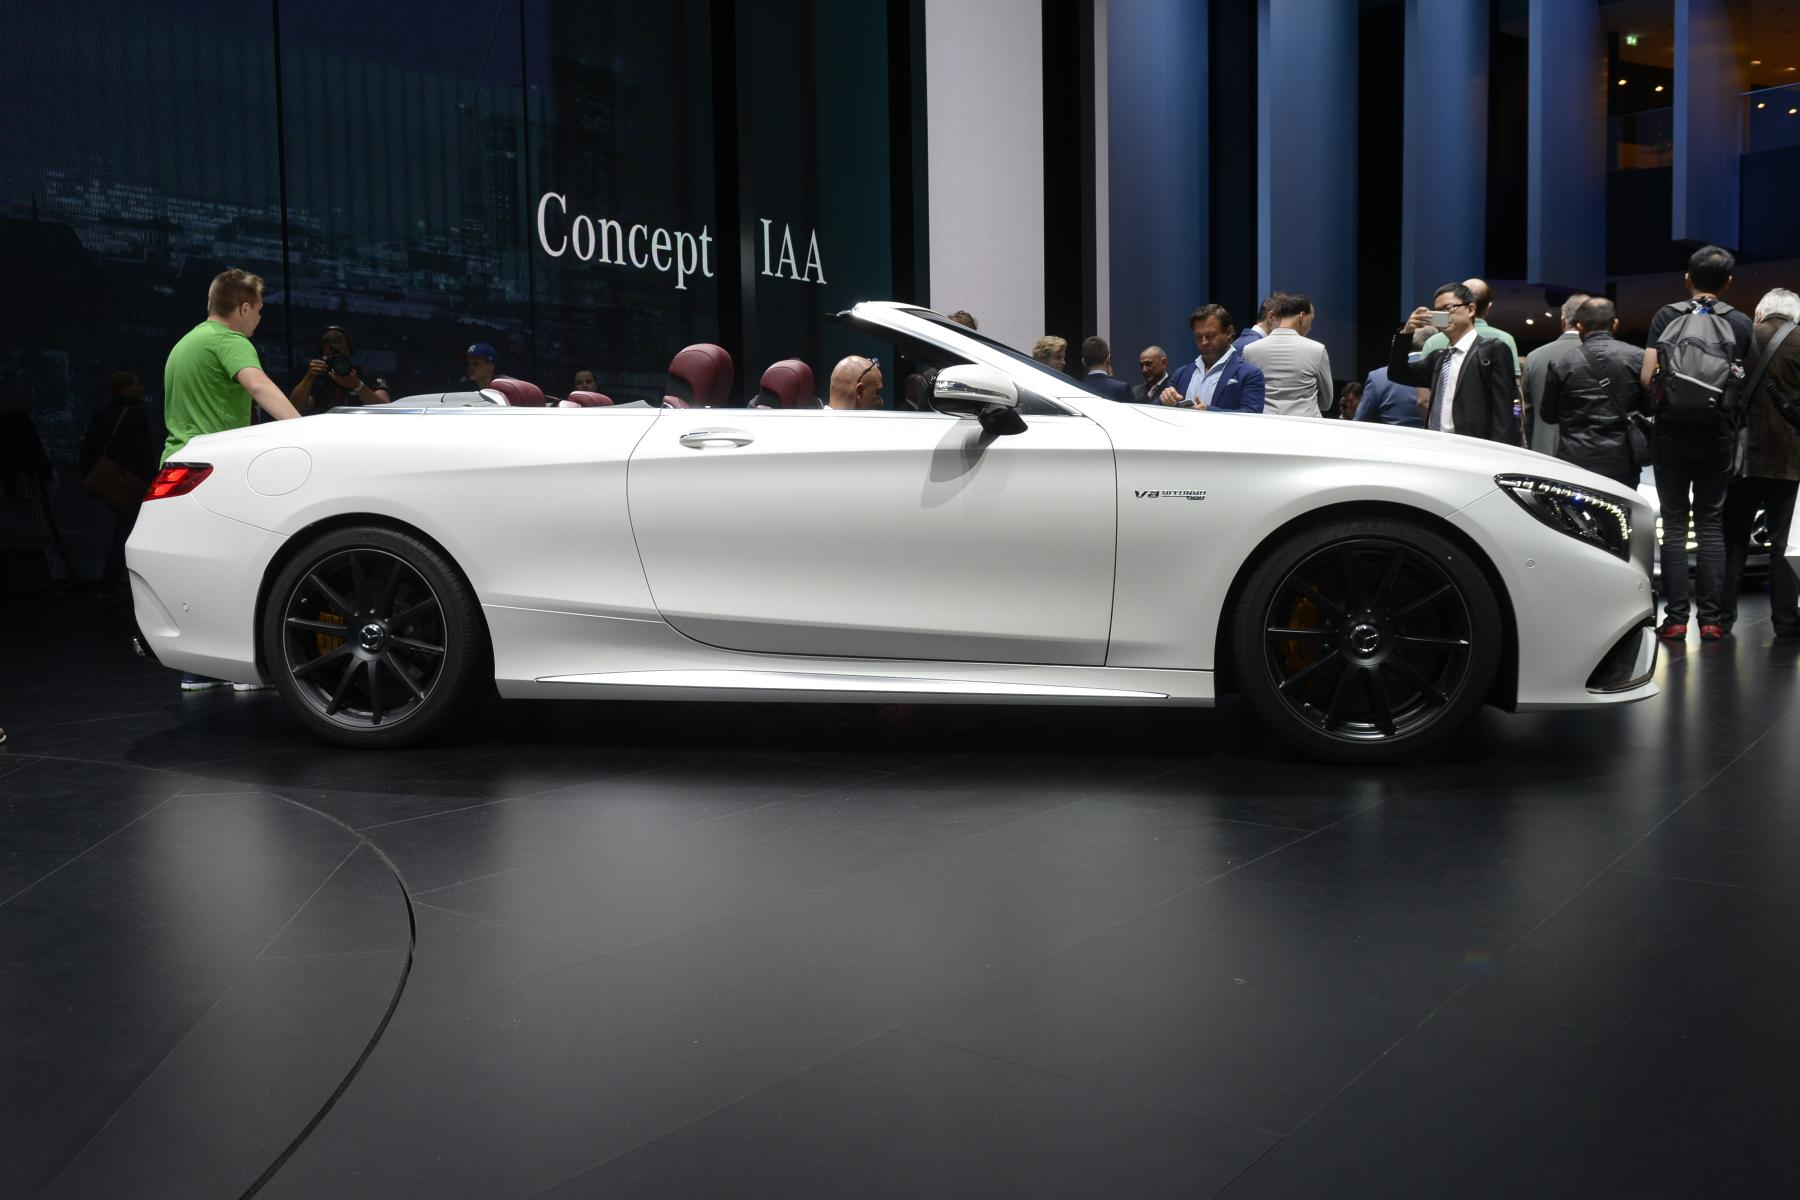 Mercedes-Benz S 63 AMG Cabriolet